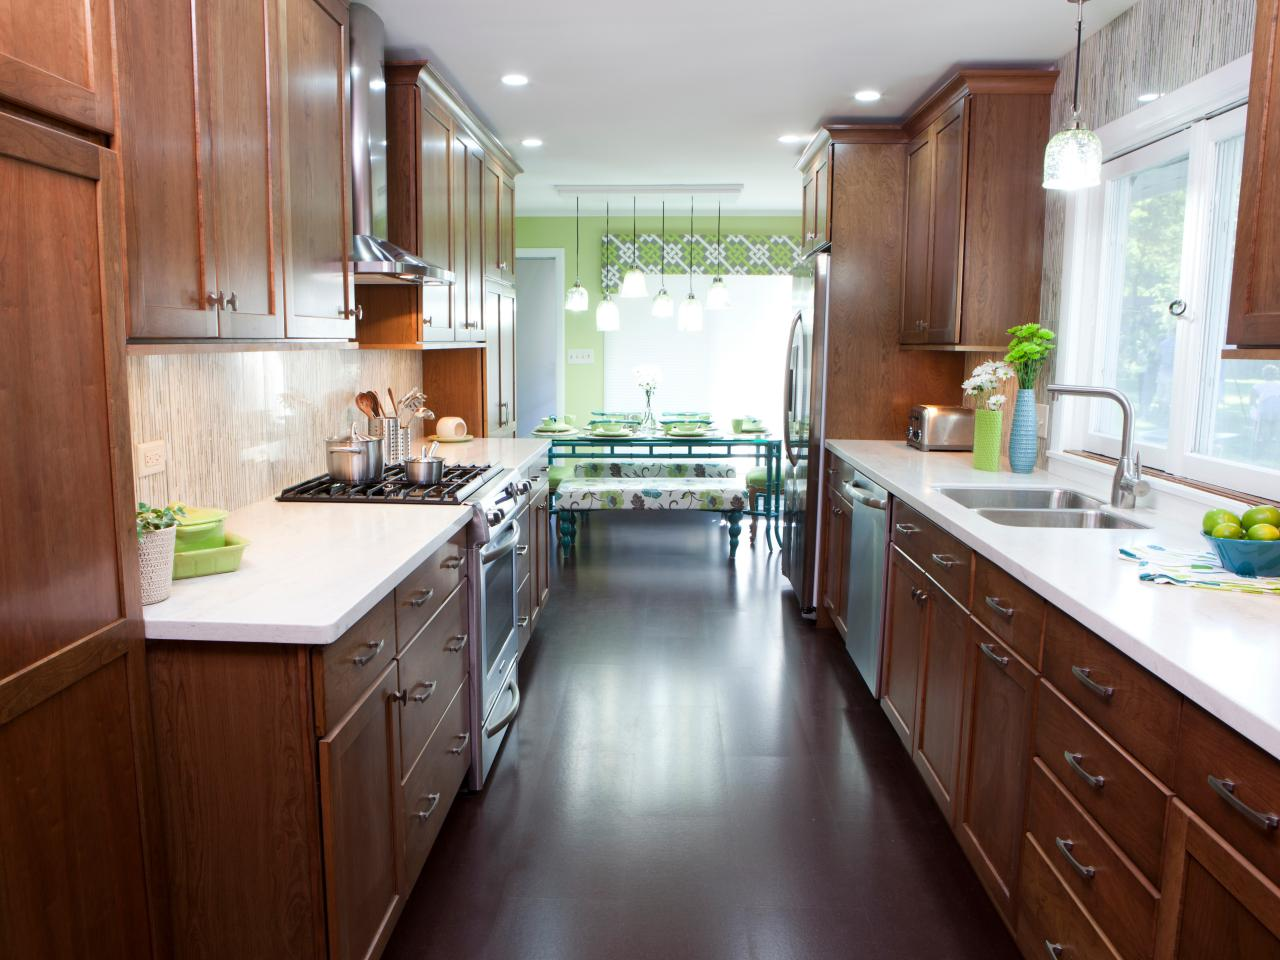 Galley kitchen designs hgtv for Kitchen gallery ideas